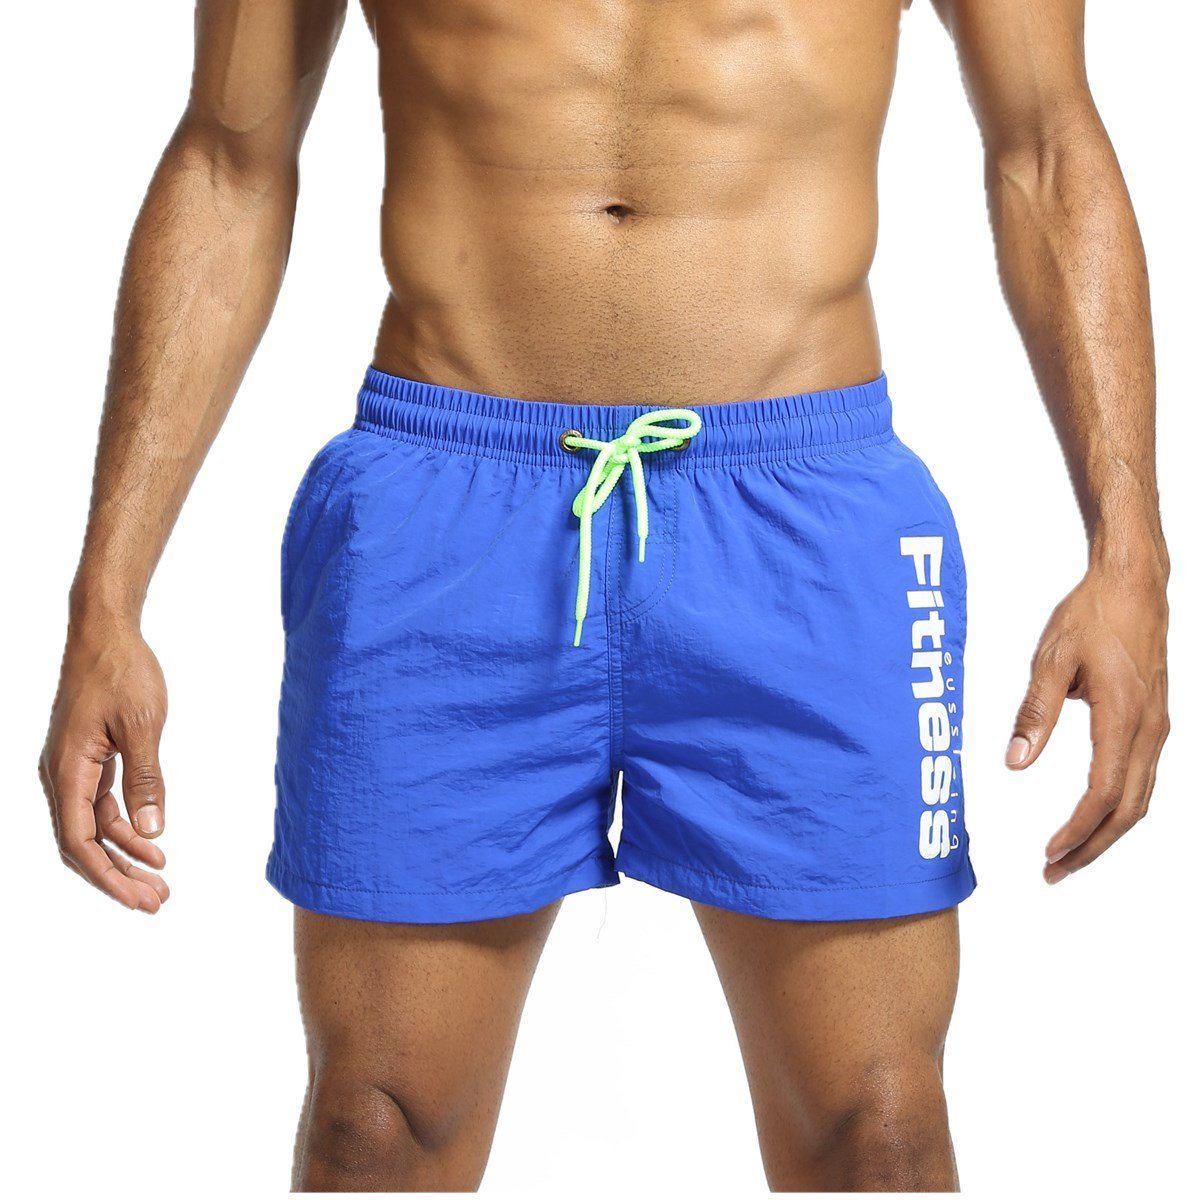 LJCCQ Men's Shorts Swim Trunks Quick Dry Beach Shorts With Pockets For Surfing Running Swimming Watershort (US L Asia Tag XXL -Waist:32''-37'', Blue1)